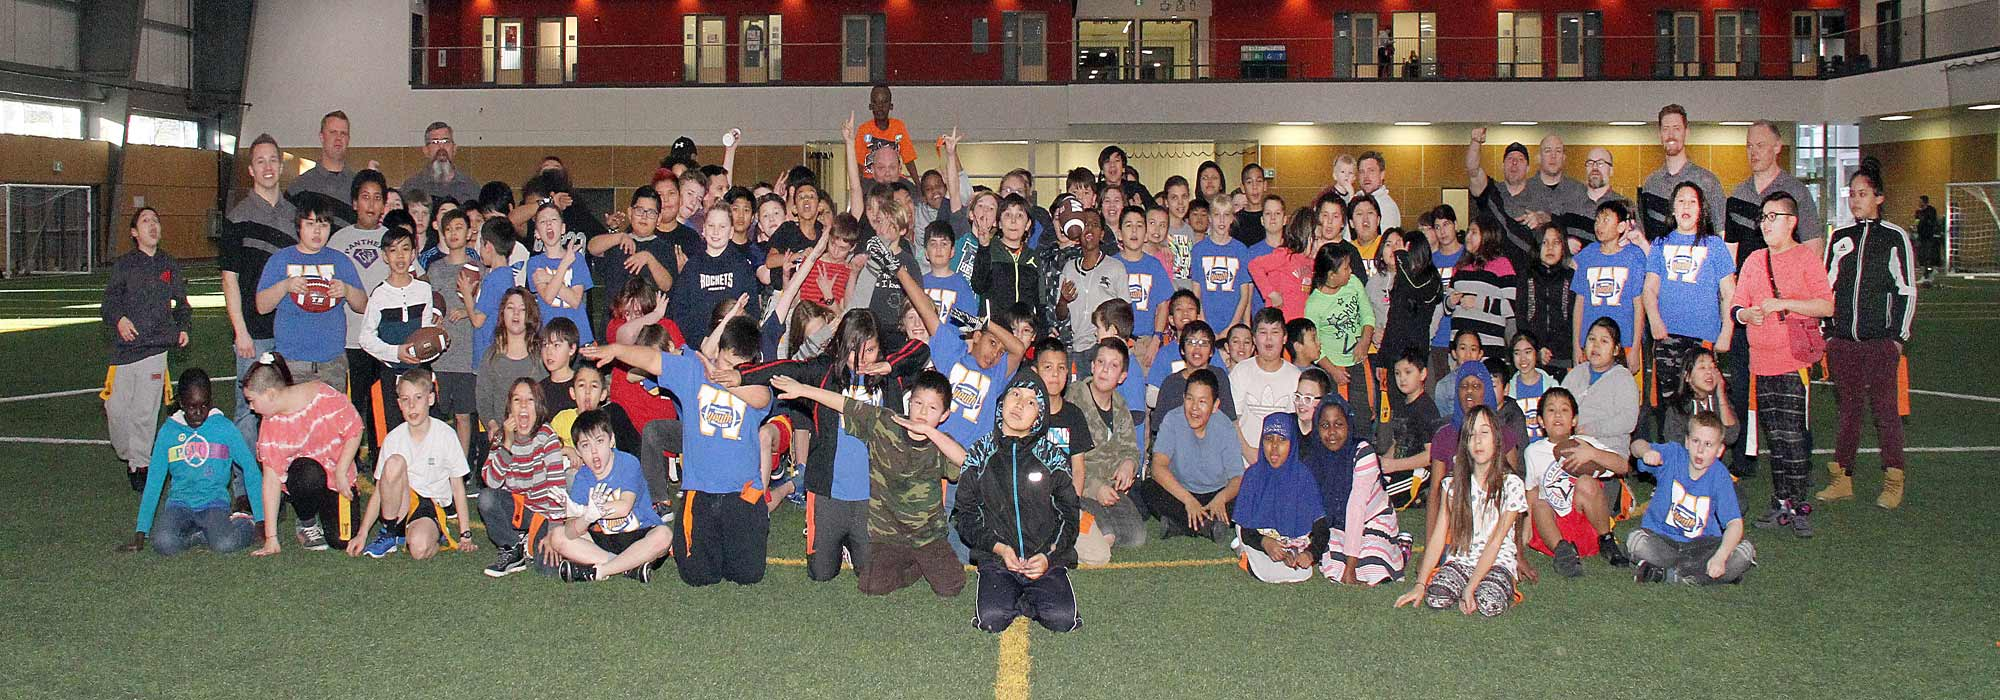 Winnipeg Blue Bombers and Winnipeg Police Association Kickoff 